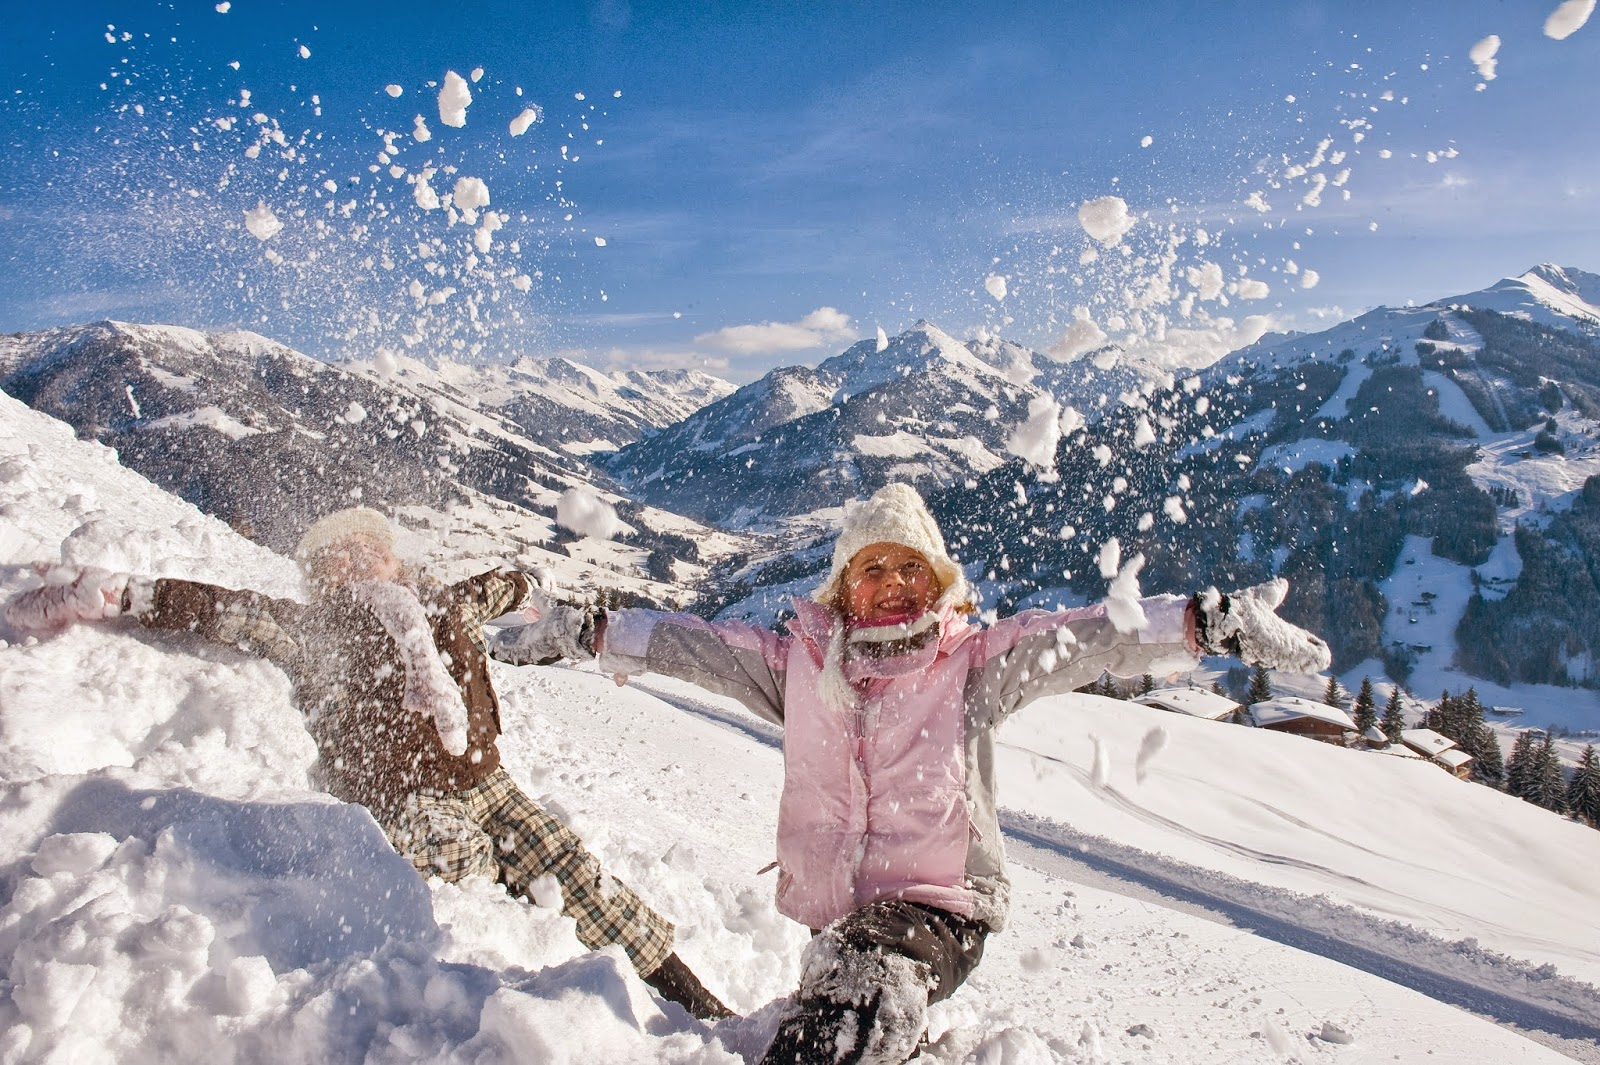 Alpbach, Austria - The Top Ski Resorts for Families In The World